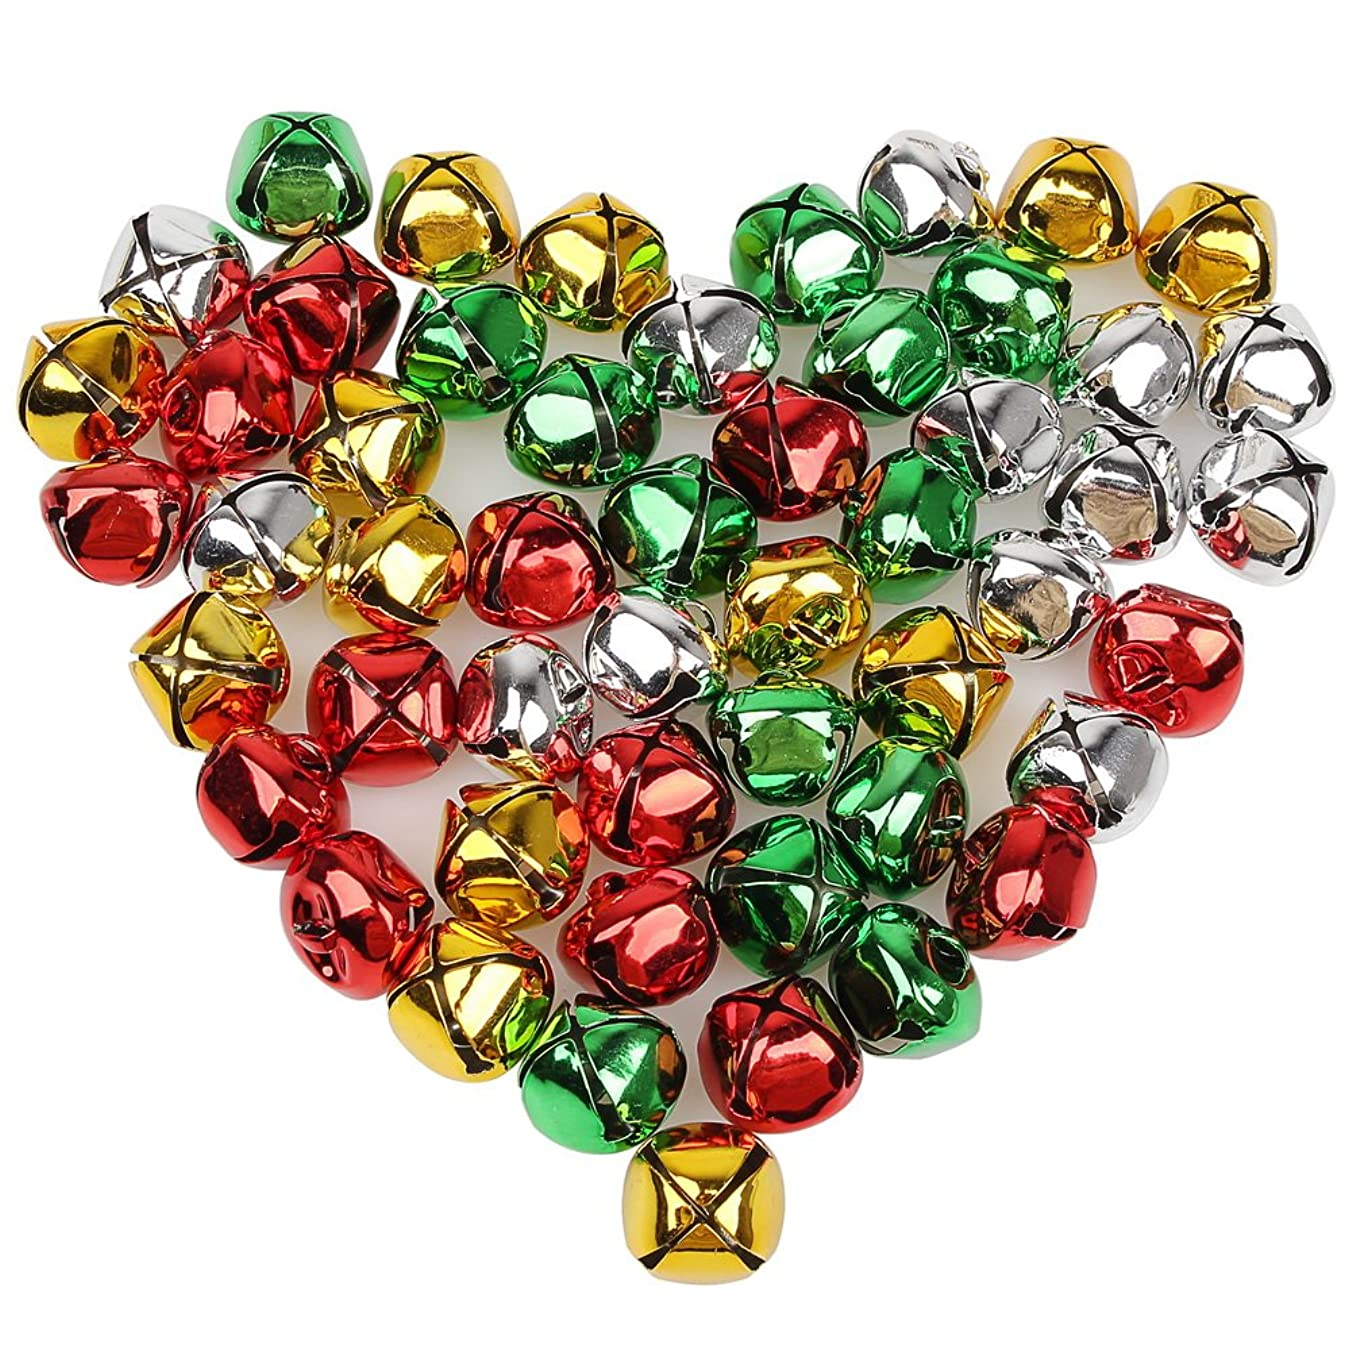 Pengxiaomei 50 PCS Jingle Bells, Colorful Christmas Bells, 1 Inch Craft Bells Bulk Loose Beads Charms for Party & Festival Decorations and Jewelry Making